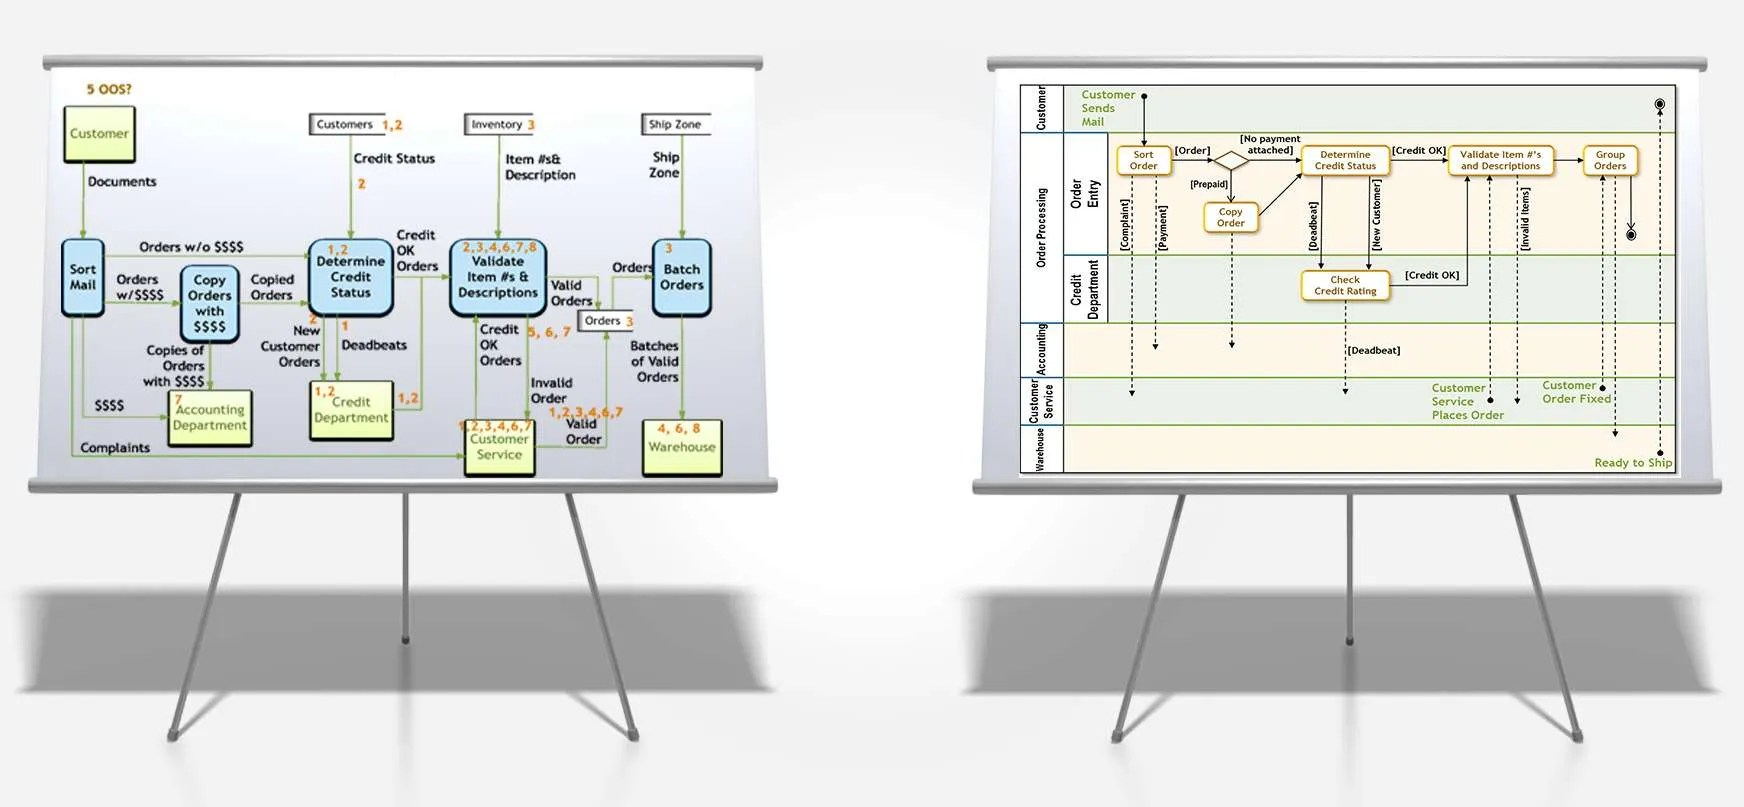 data flow diagrams vs activity diagrams which to use when rh businessanalysisexperts com Flow Diagram vs Sequence Diagram Data Flow Diagram vs Sequence Diagram